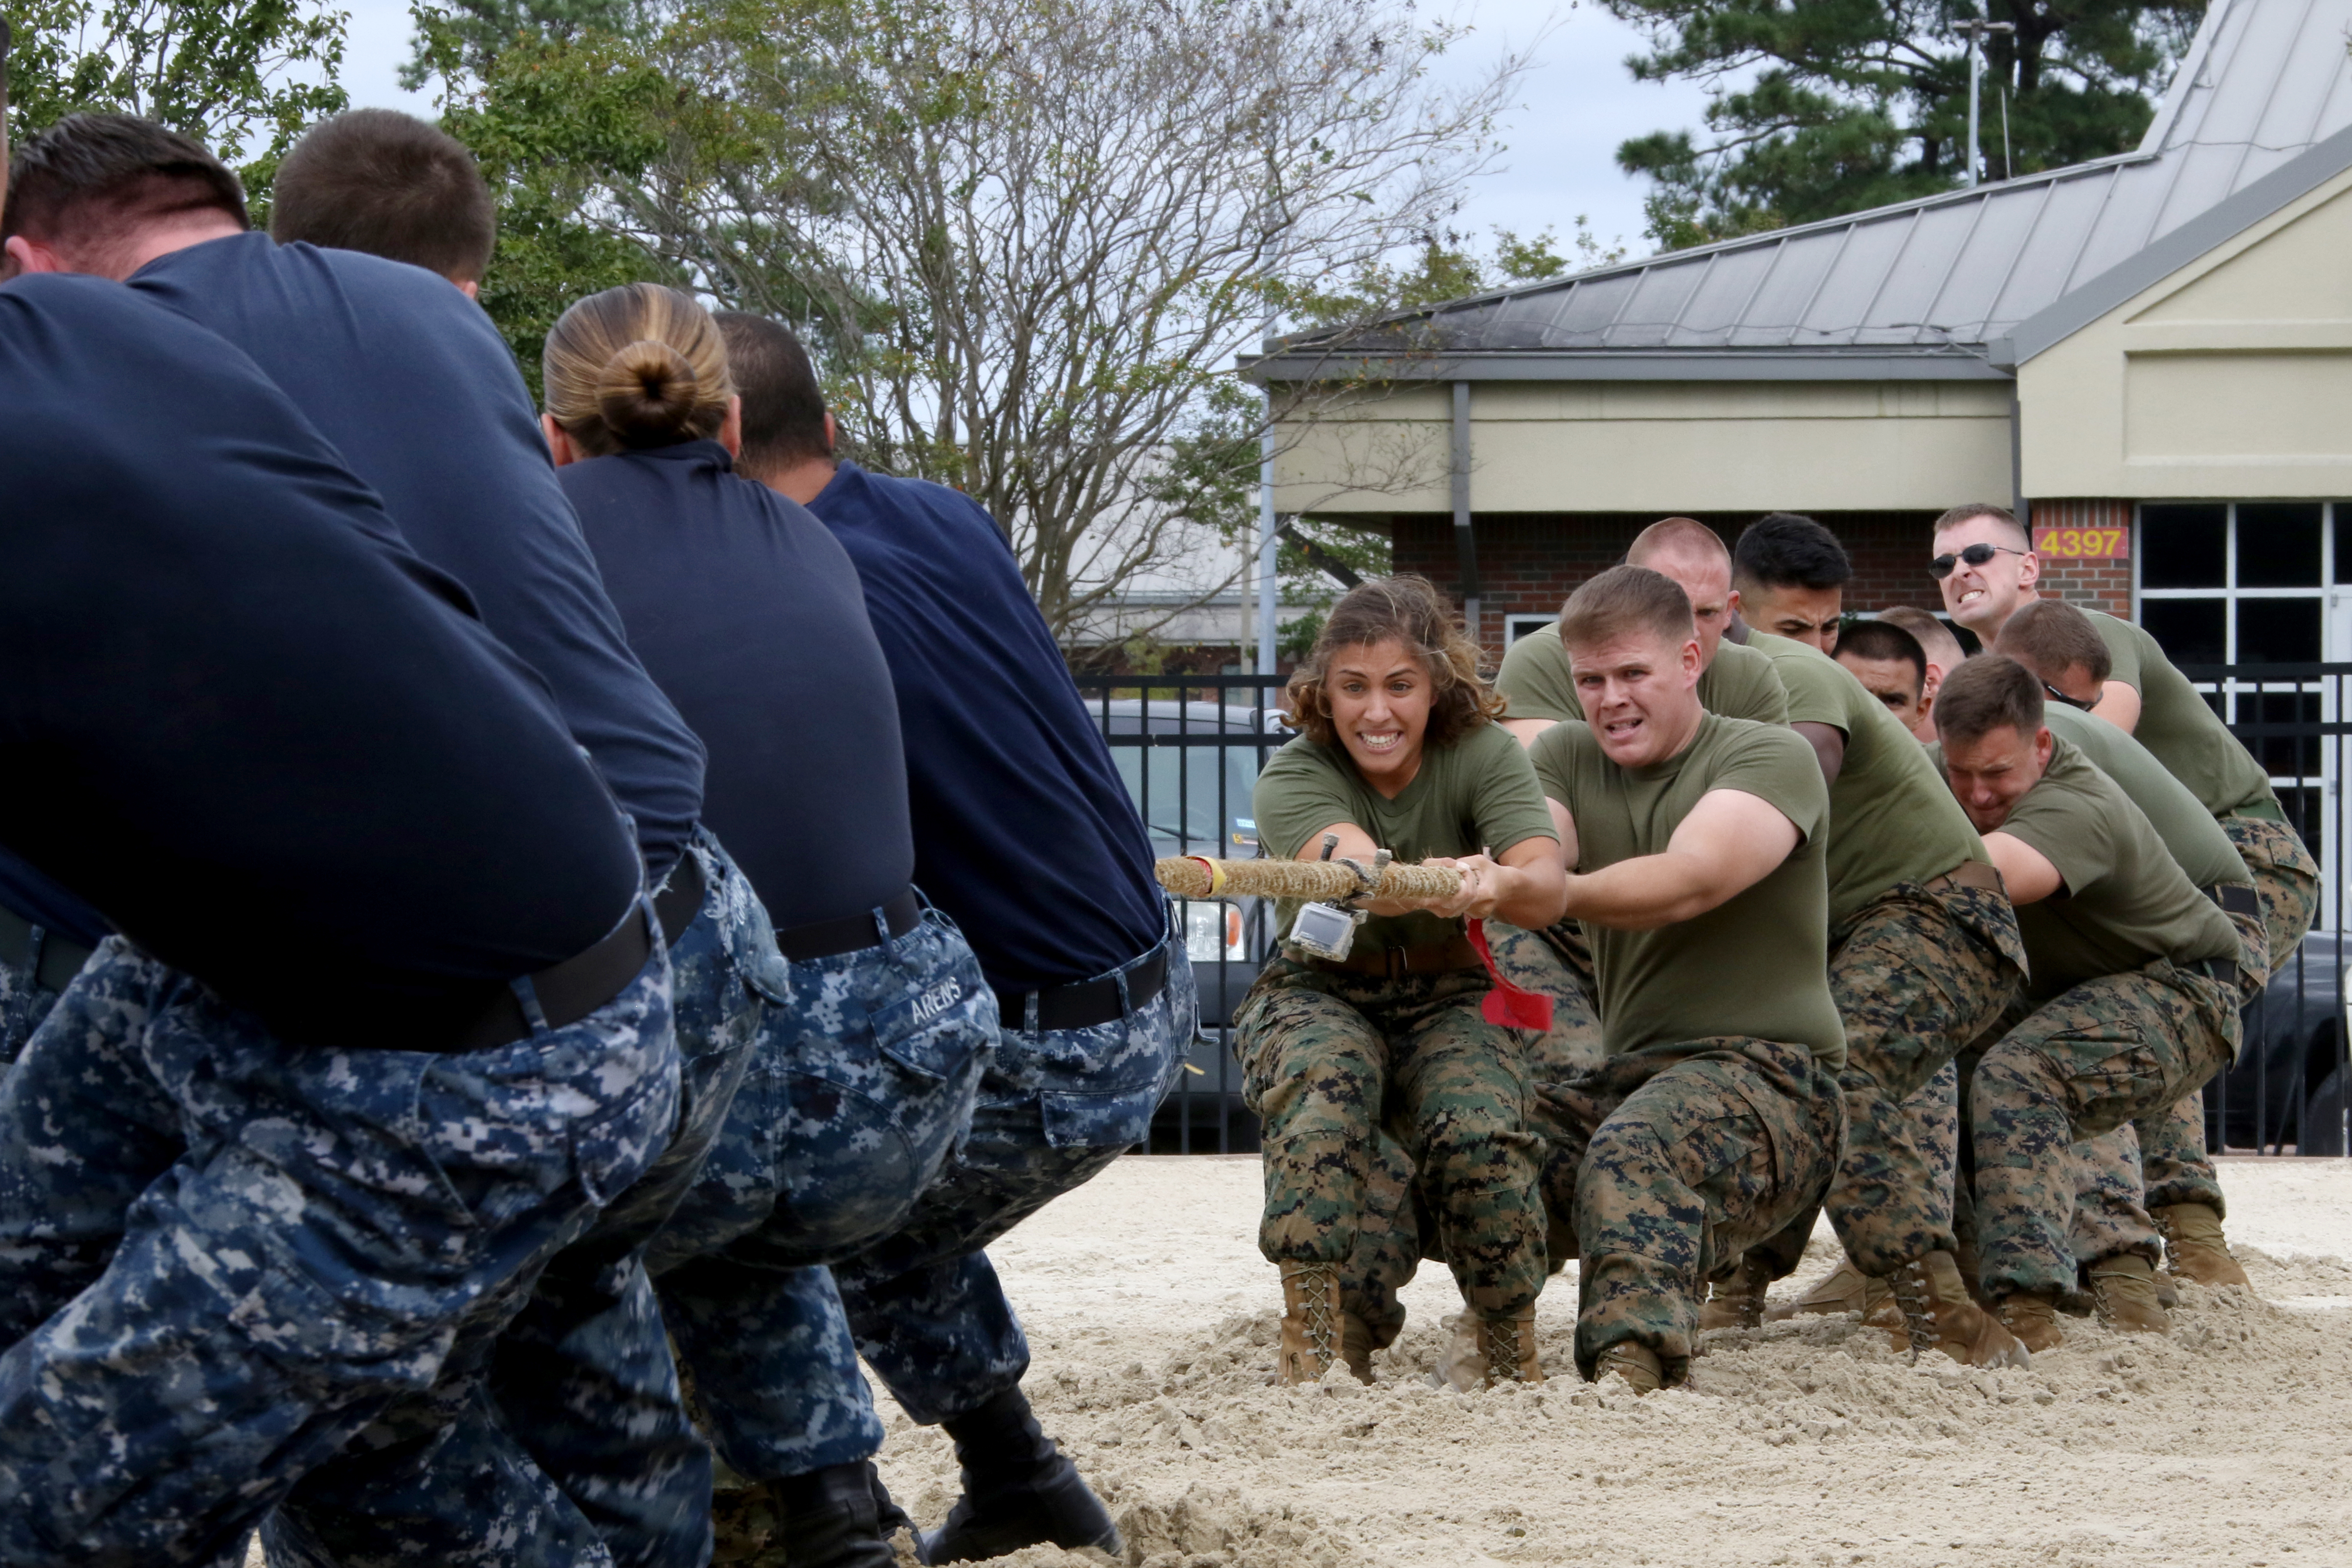 Sailors from the Naval Health Clinic and Marines from Marine Aerial Refueler Transport Squadron 252 battle it out in one of the early contests during the 2017 Combined Federal Campaign Tug-of-War Tournament at Marine Corps Air Station Cherry Point, N.C., Oct. 13, 2017. (Cpl. Jason Jimenez/Marine Corps)